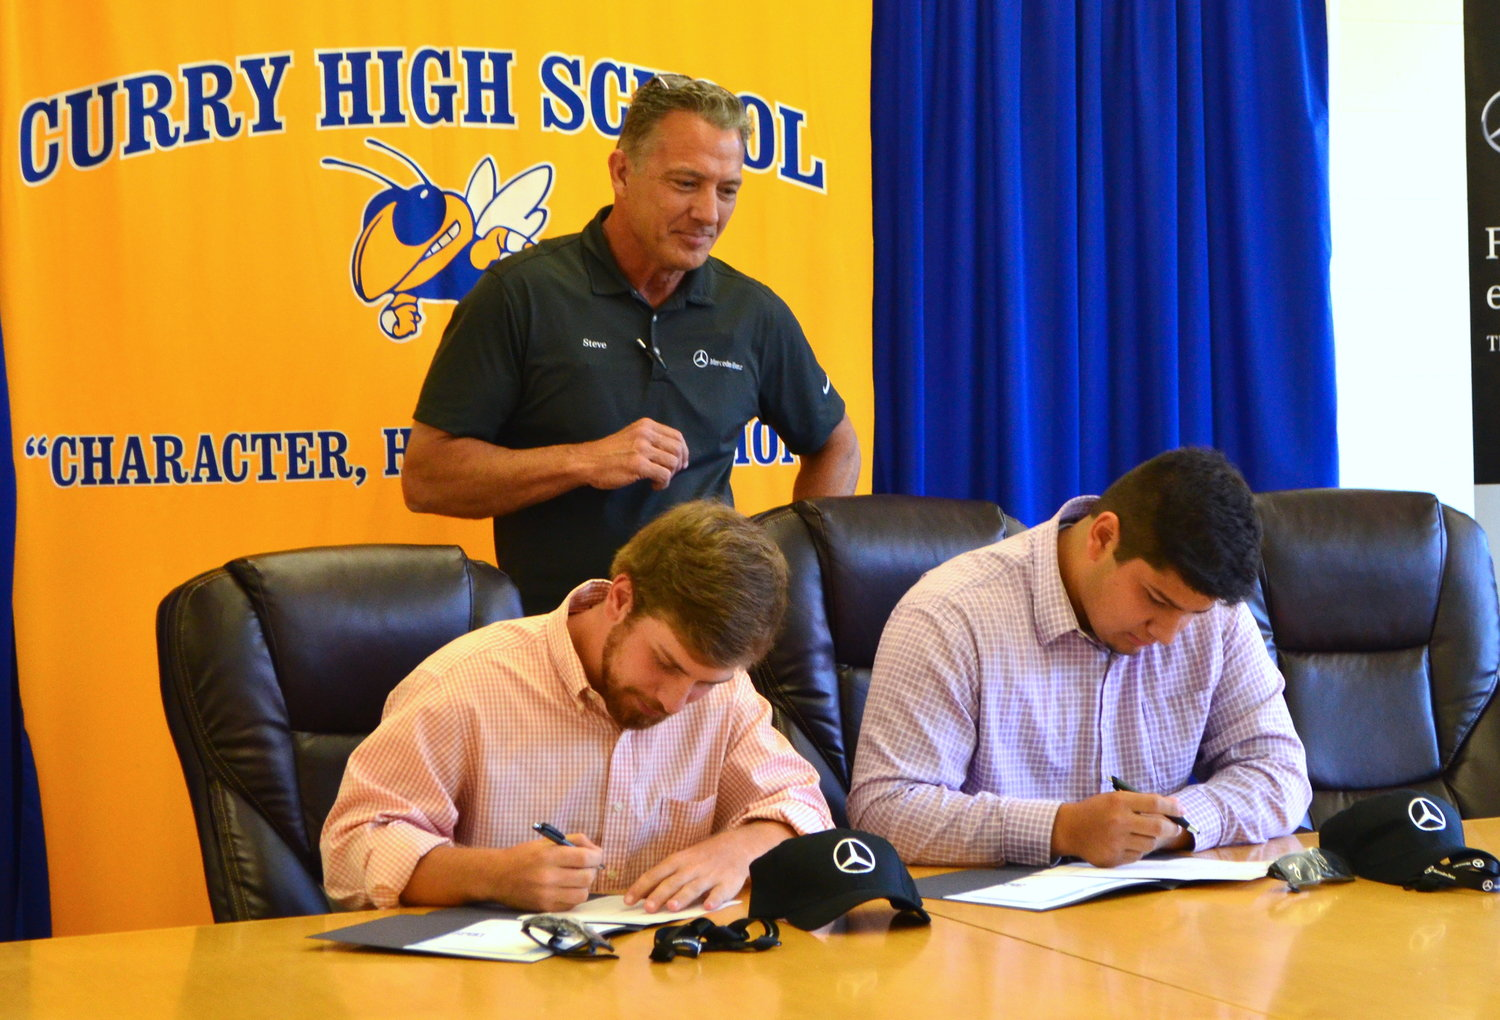 Curry seniors Tristan Jones and Martin Martinez have signed for a career opportunity with Mercedes-Benz. Overlooking is Mercedes-Benz Organizational Development Specialist Steve Colburn.